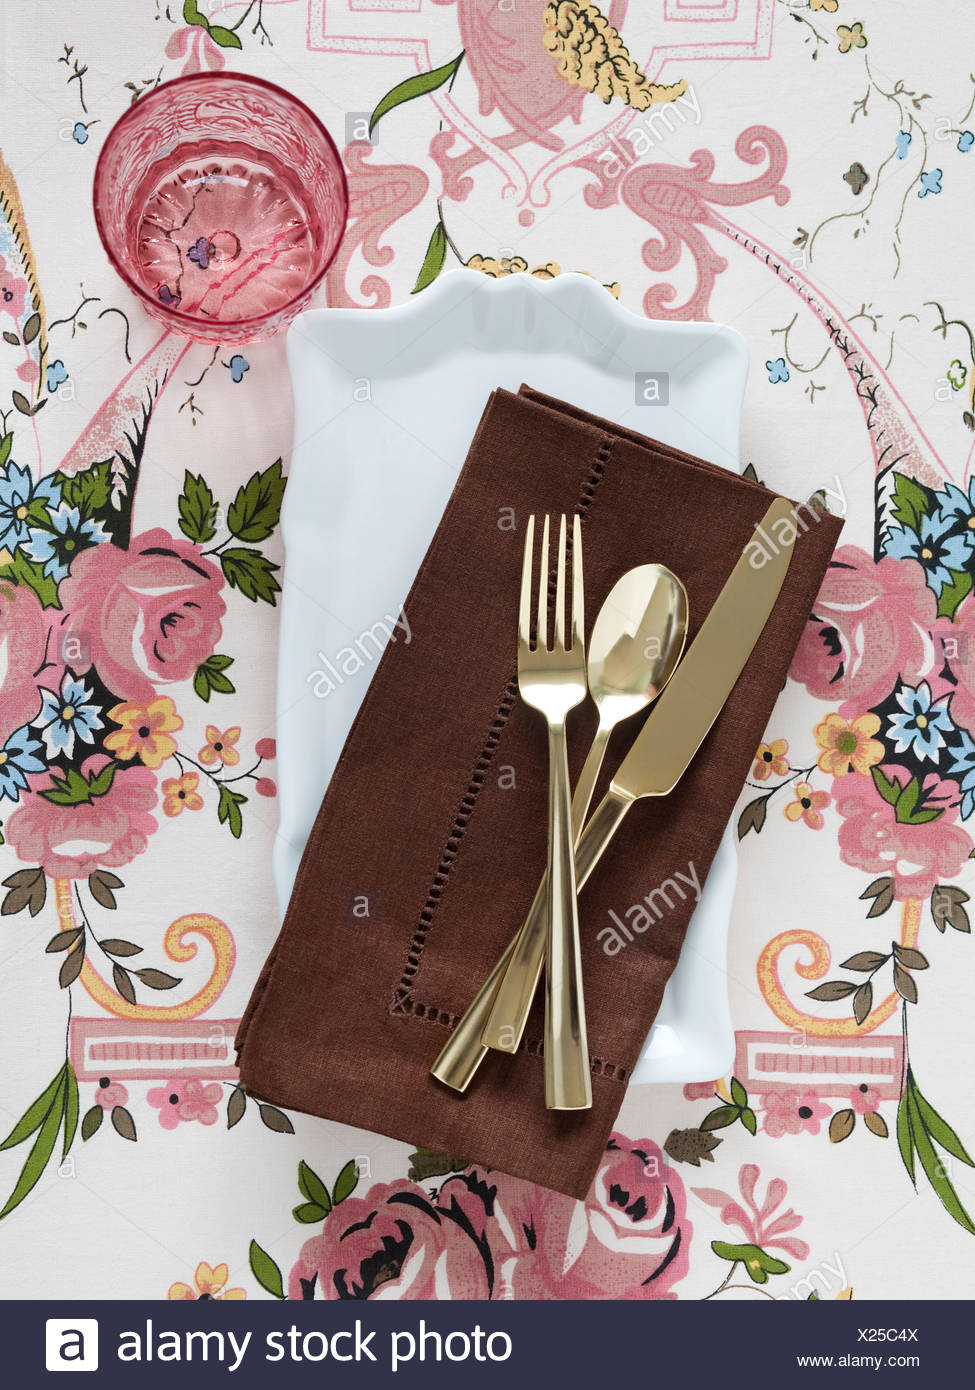 Plate with napkin and cutlery on floral tablecloth - Stock Image